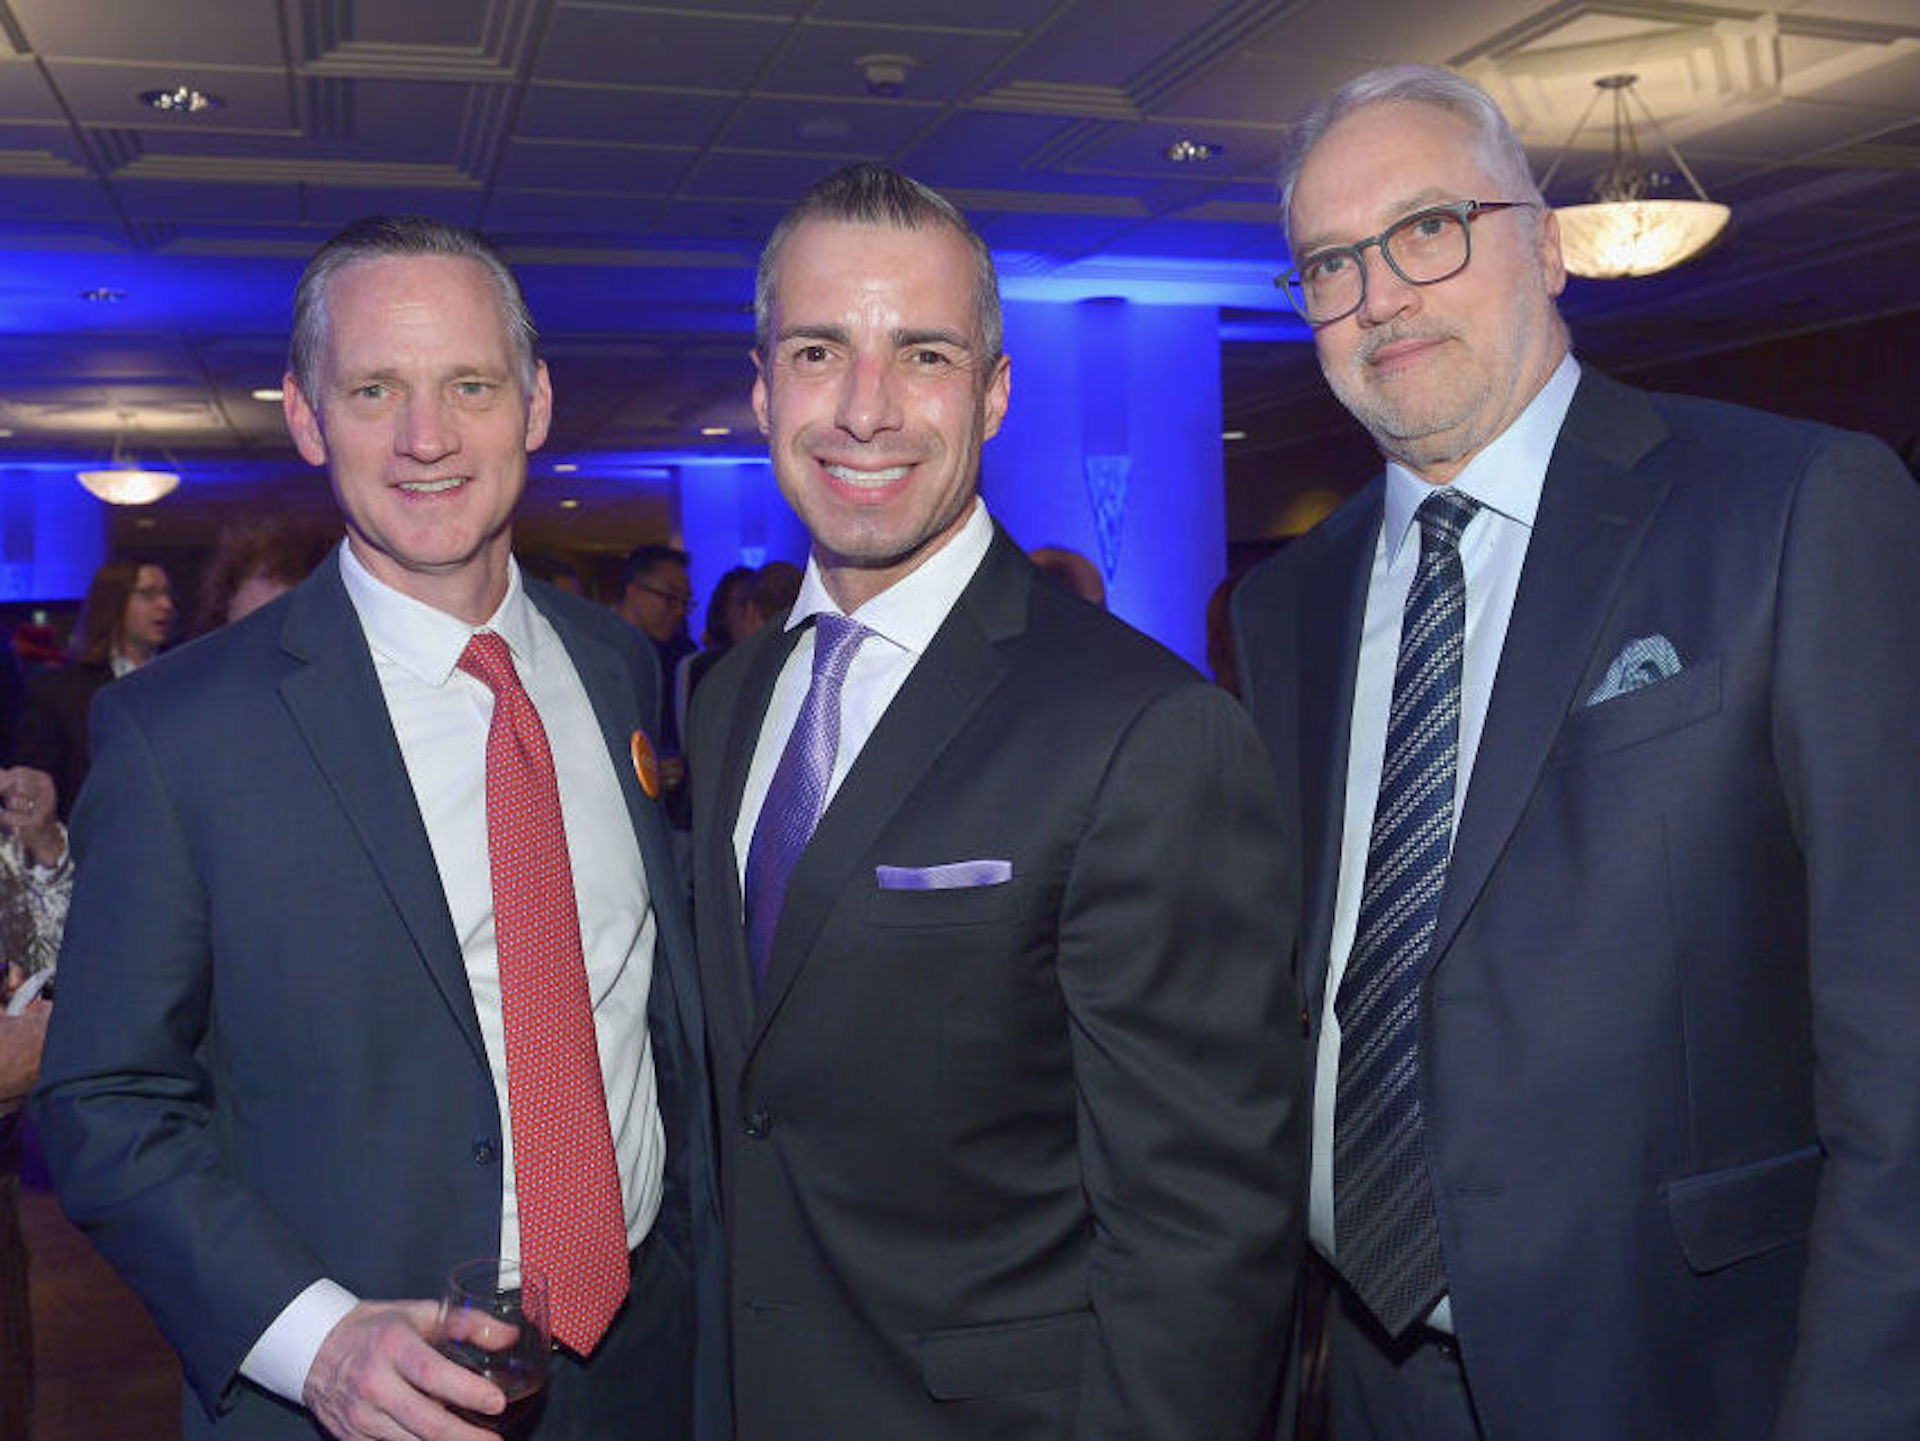 A Martinez (center) has been named a new co-host for NPR's Morning Edition. He is shown with Southern California Public Radio CEO Herb Scannell (right) at a fundraising gala for KPCC in March 2019.